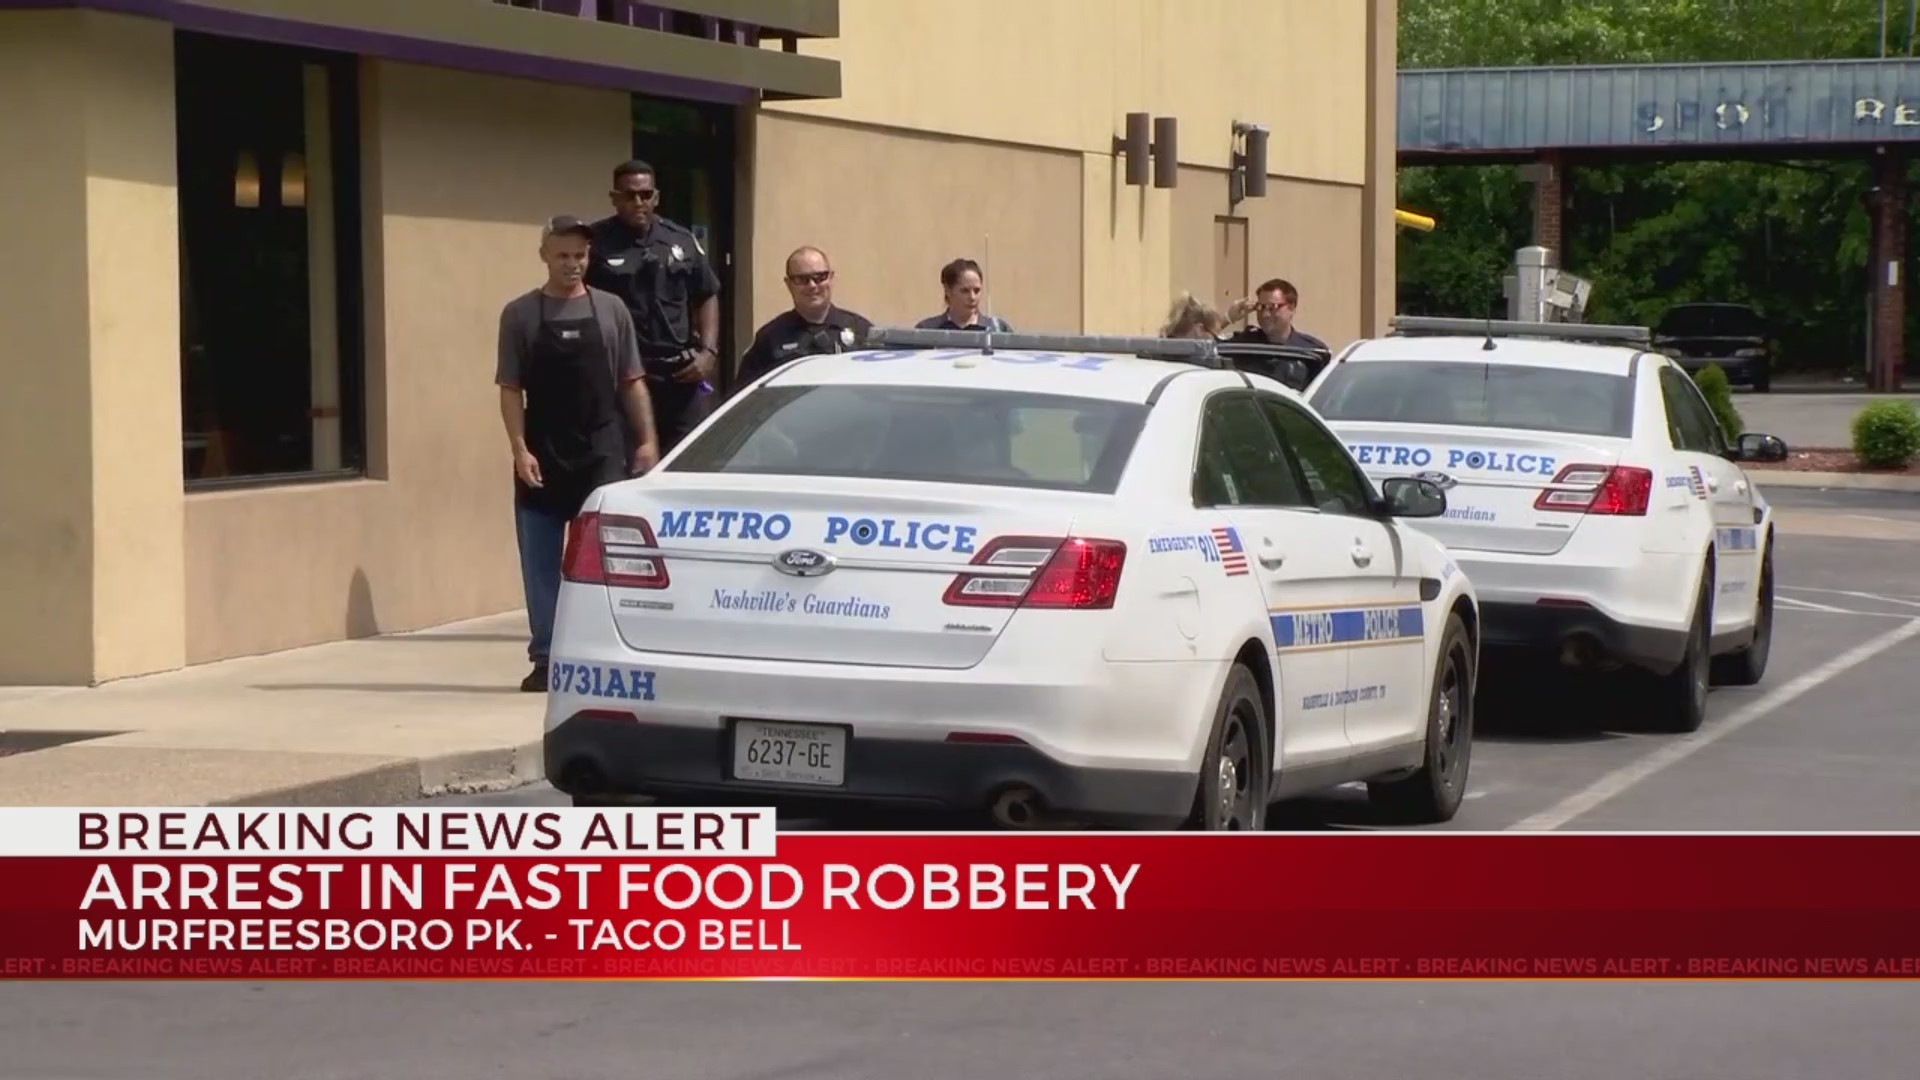 Suspect charged in South Nashville Taco Bell robbery